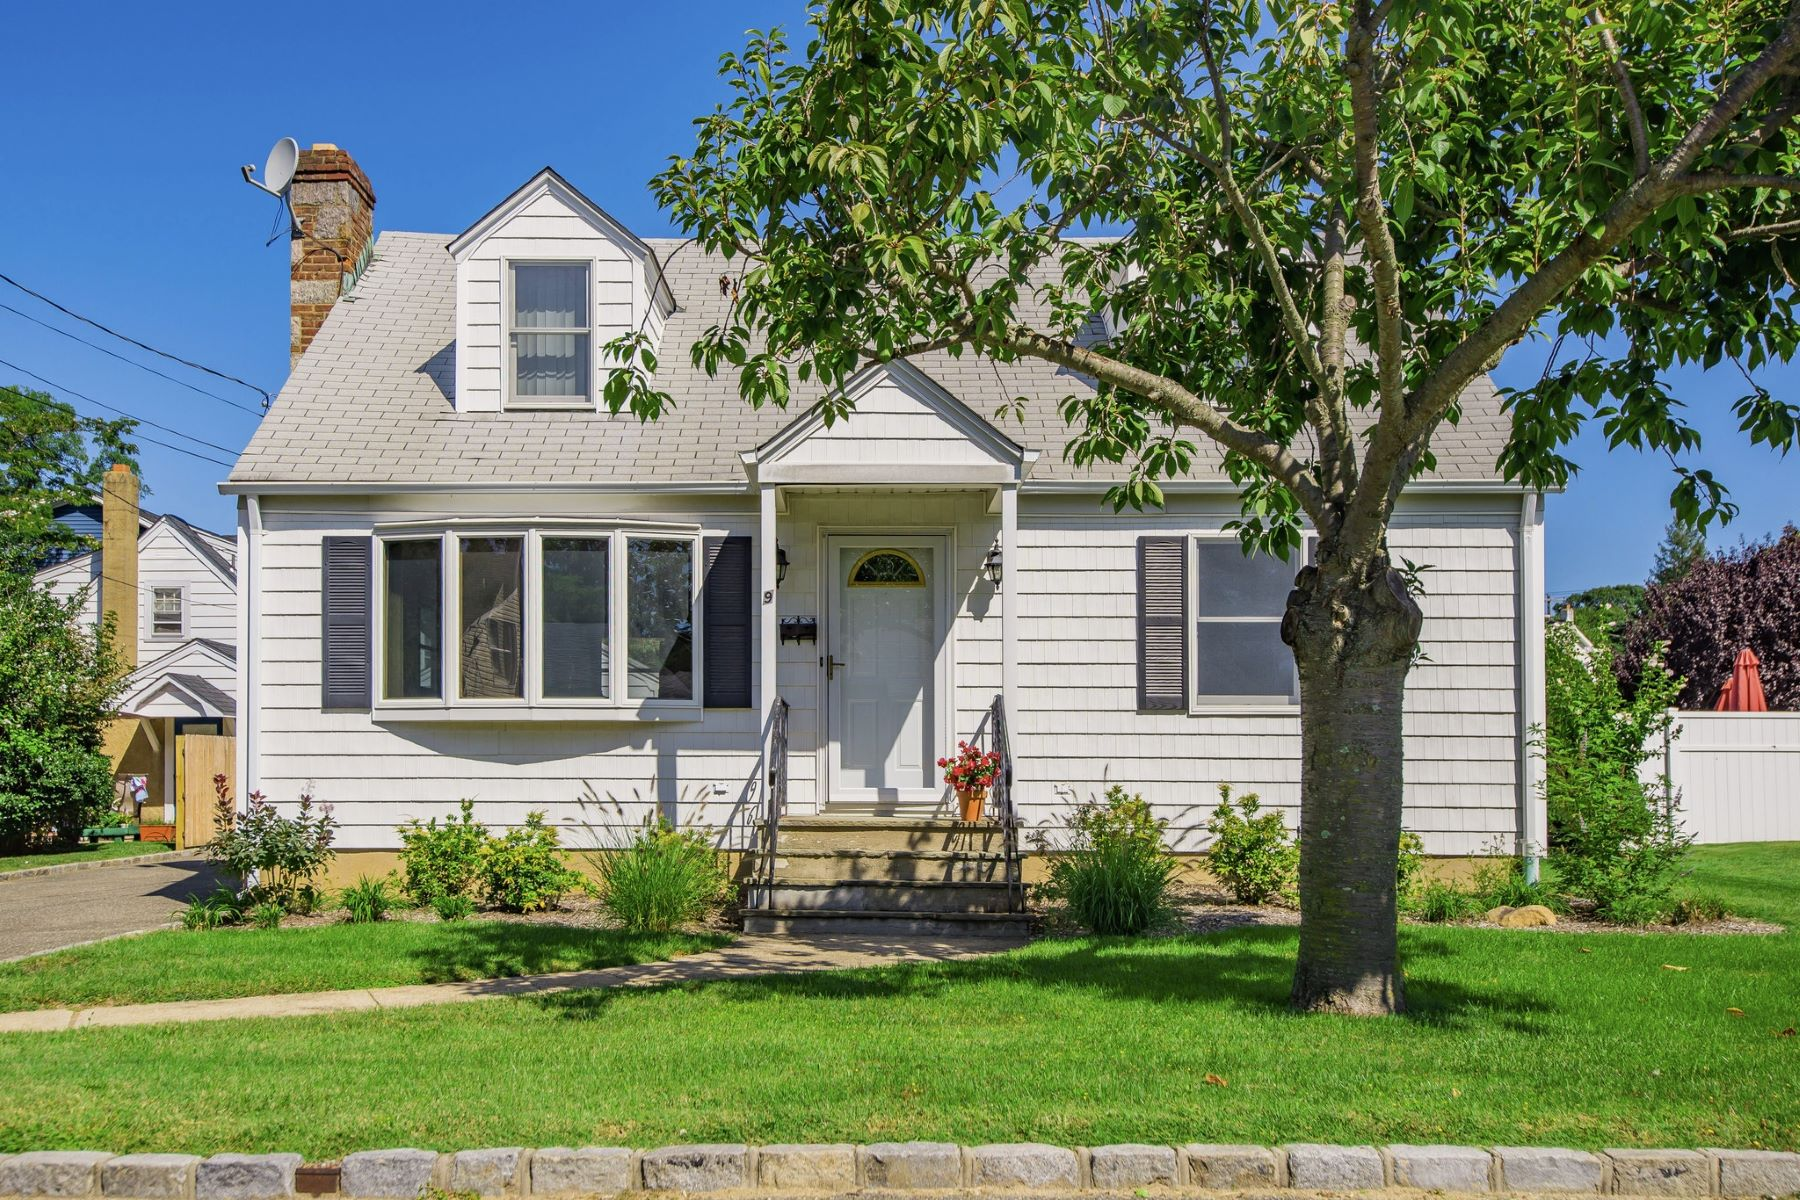 Single Family Home for Sale at 9 Sanzoverino Ln , Bayville, NY 11709 9 Sanzoverino Ln Bayville, New York, 11709 United States